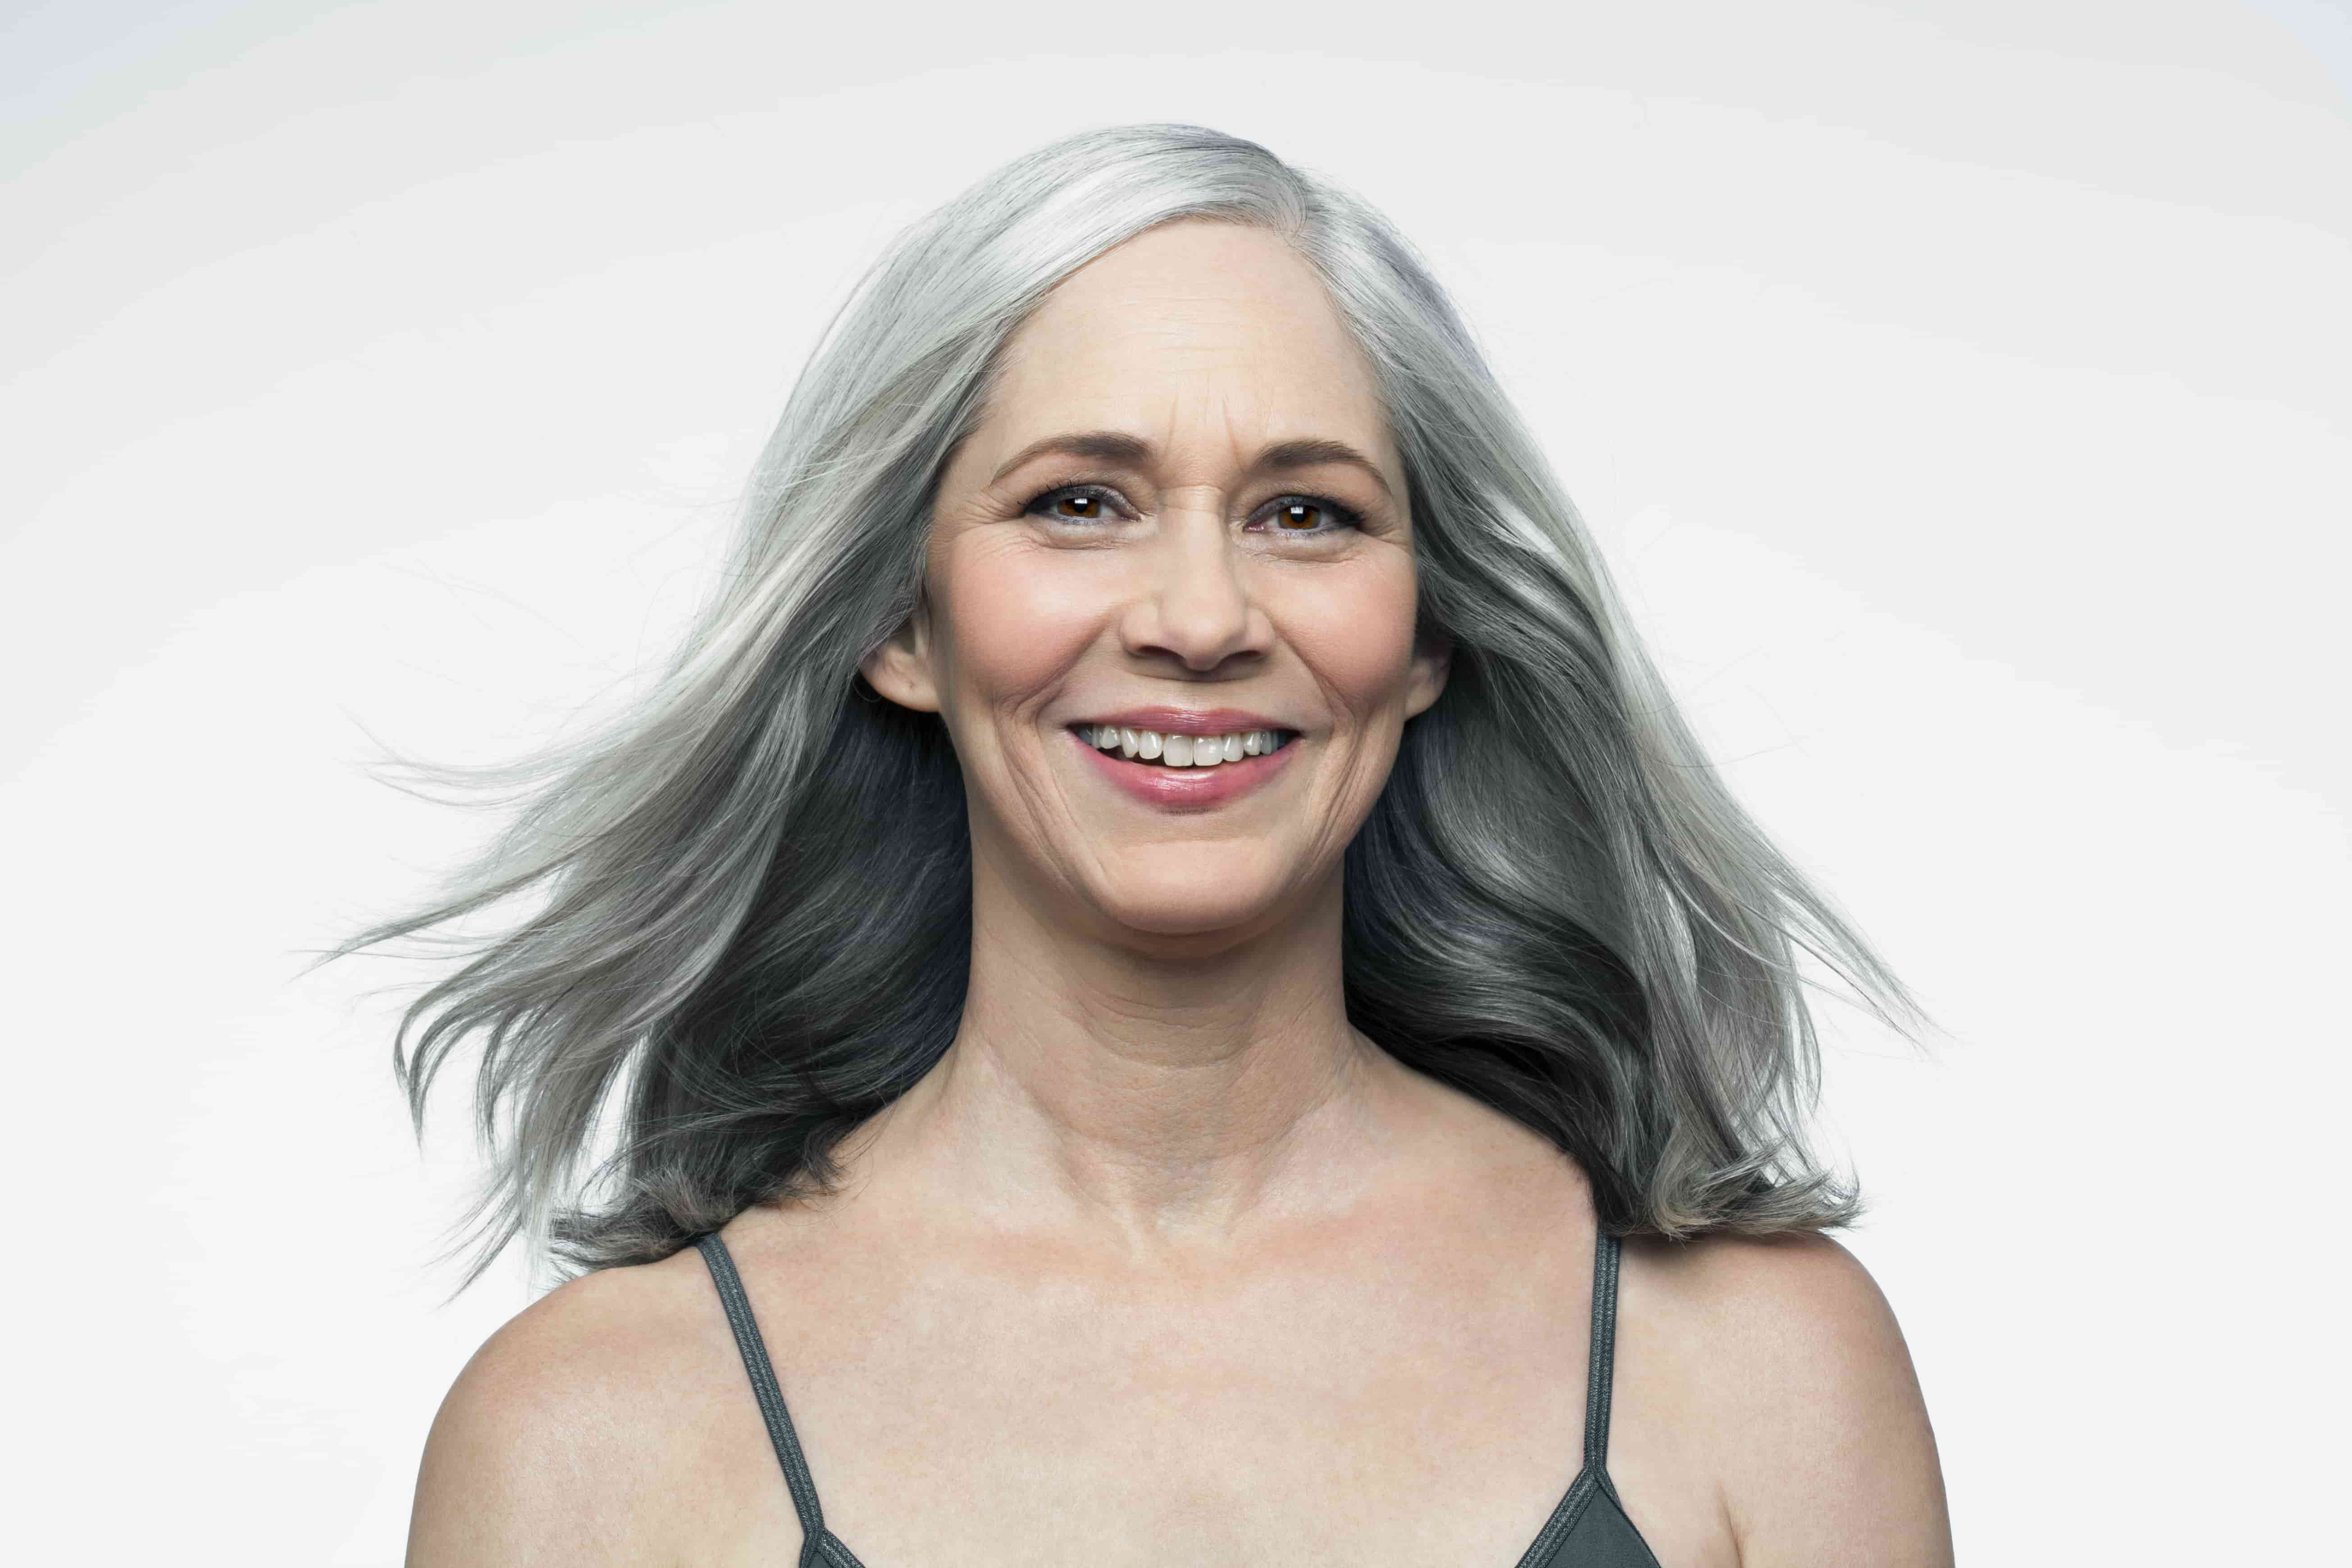 woman with grey hair smiling to the camera